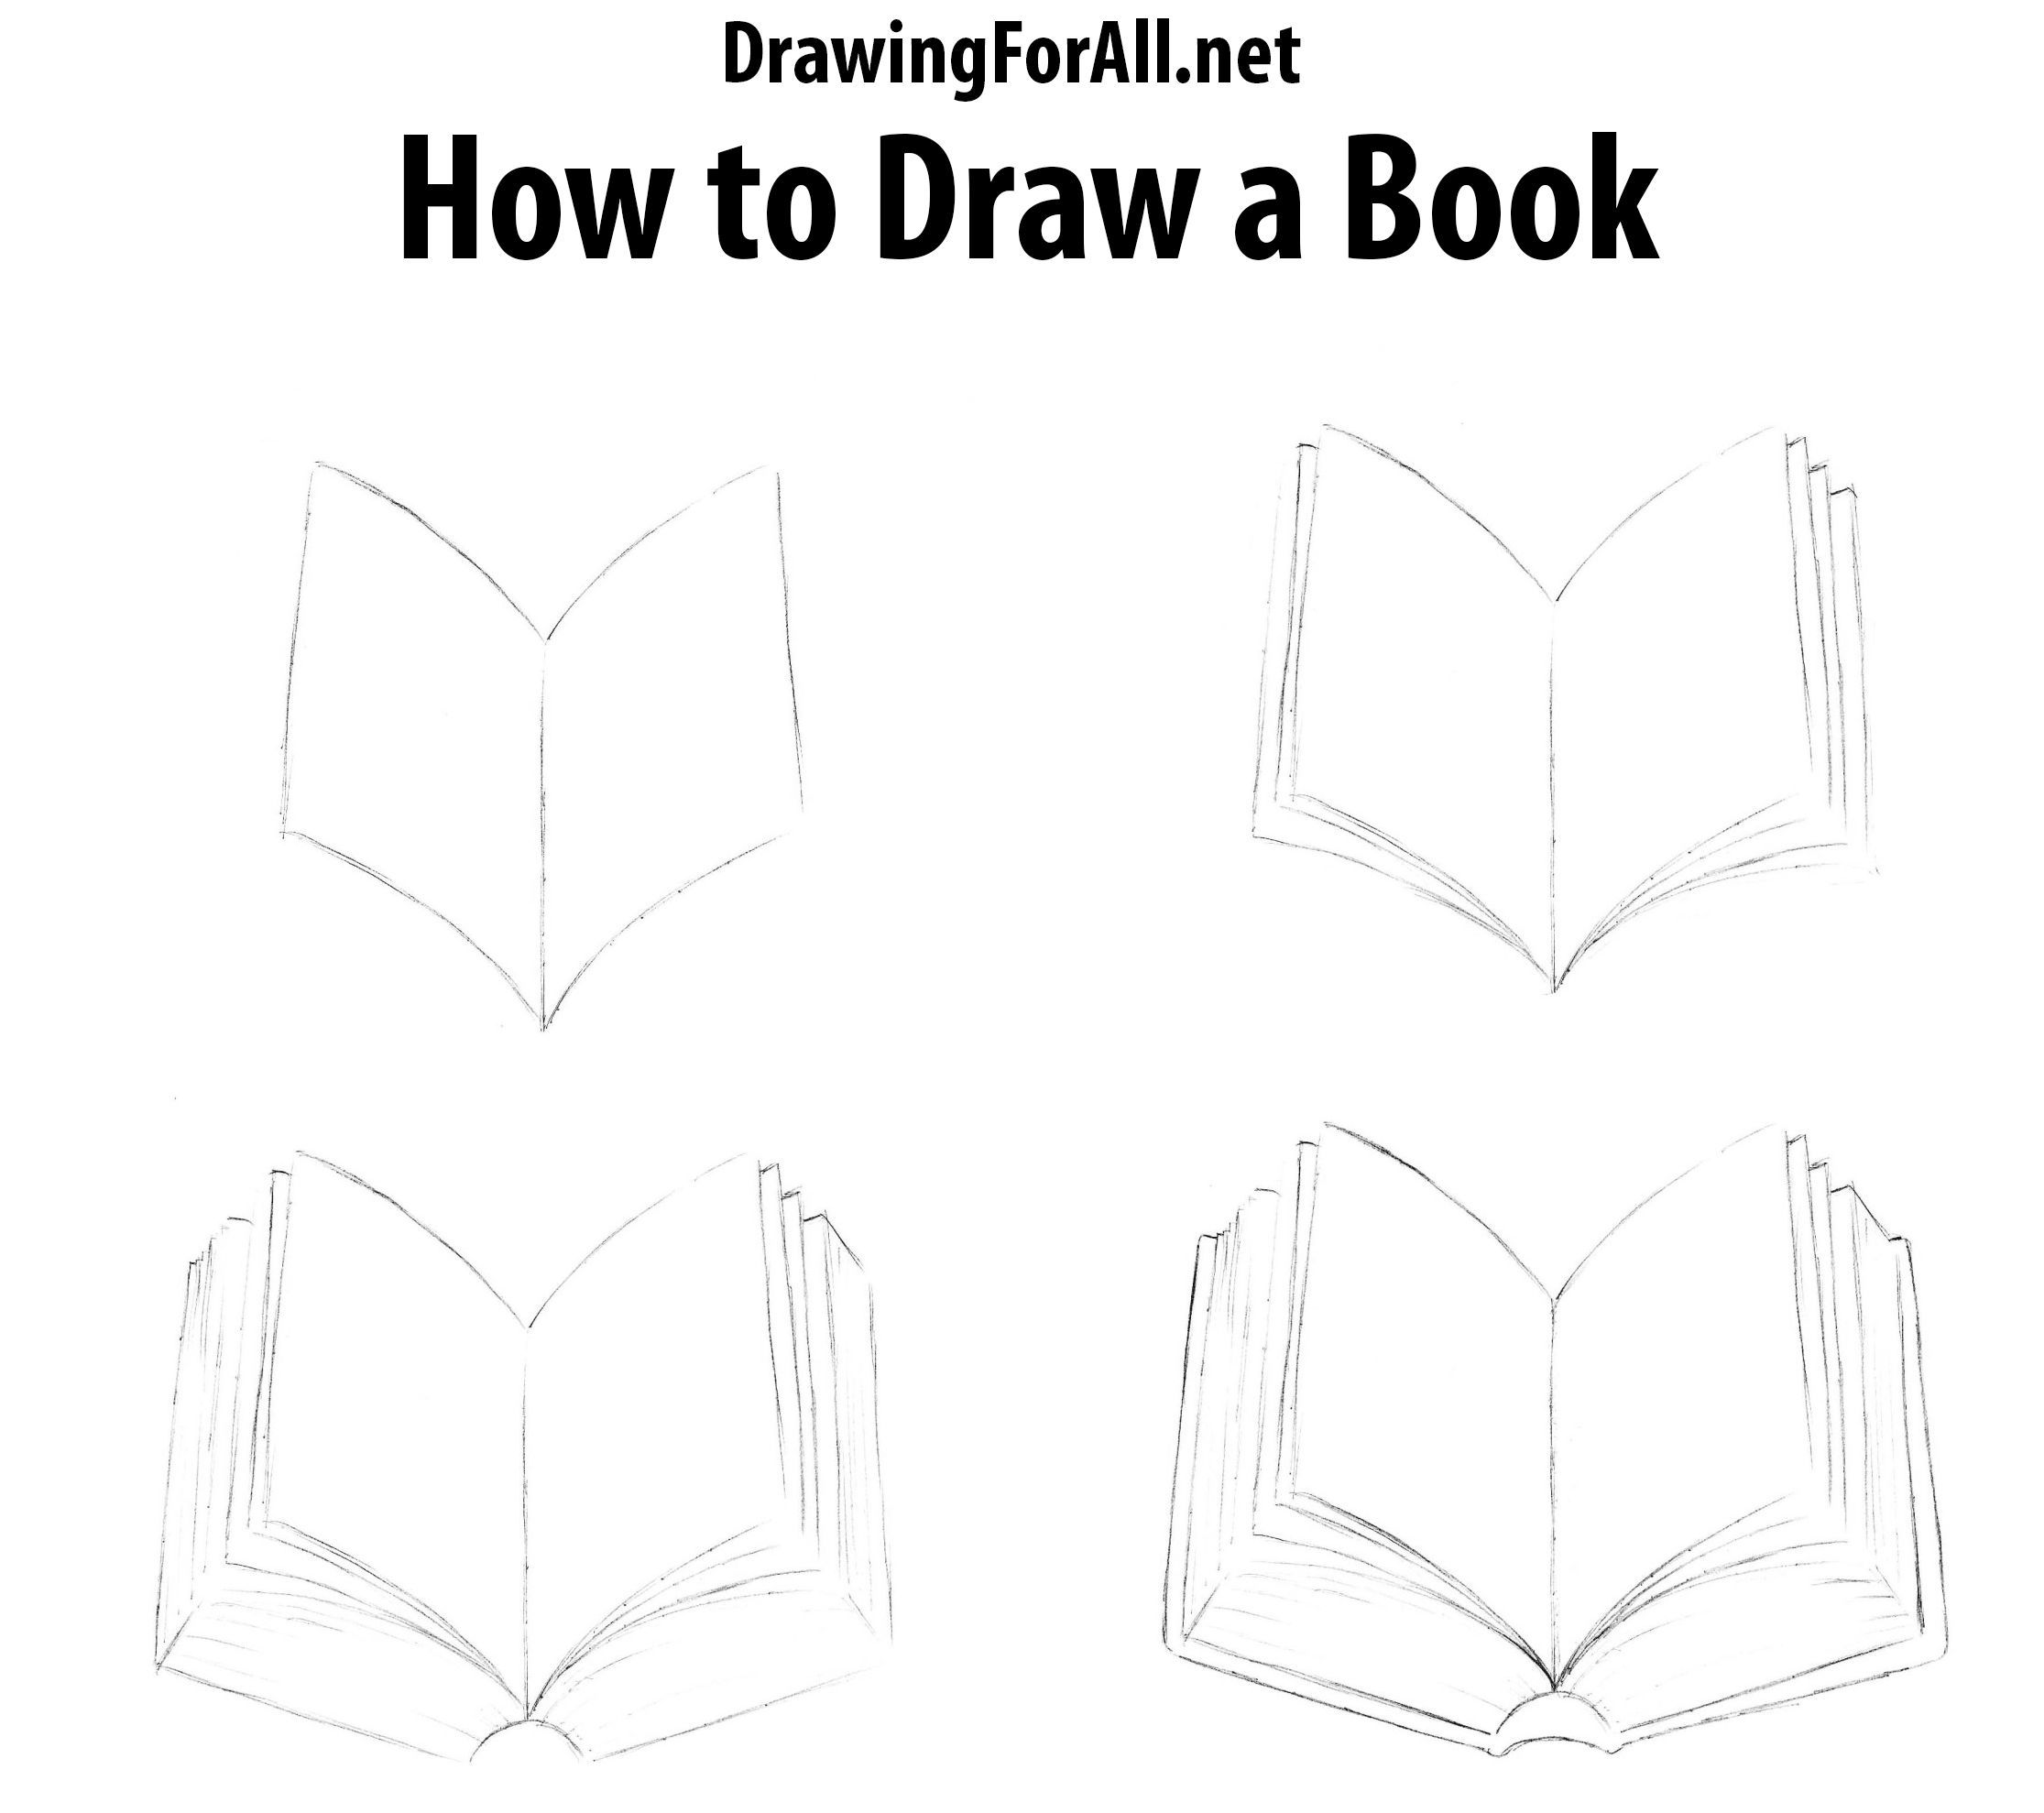 How To Draw A Book Book Drawing Drawings Pencil Drawings